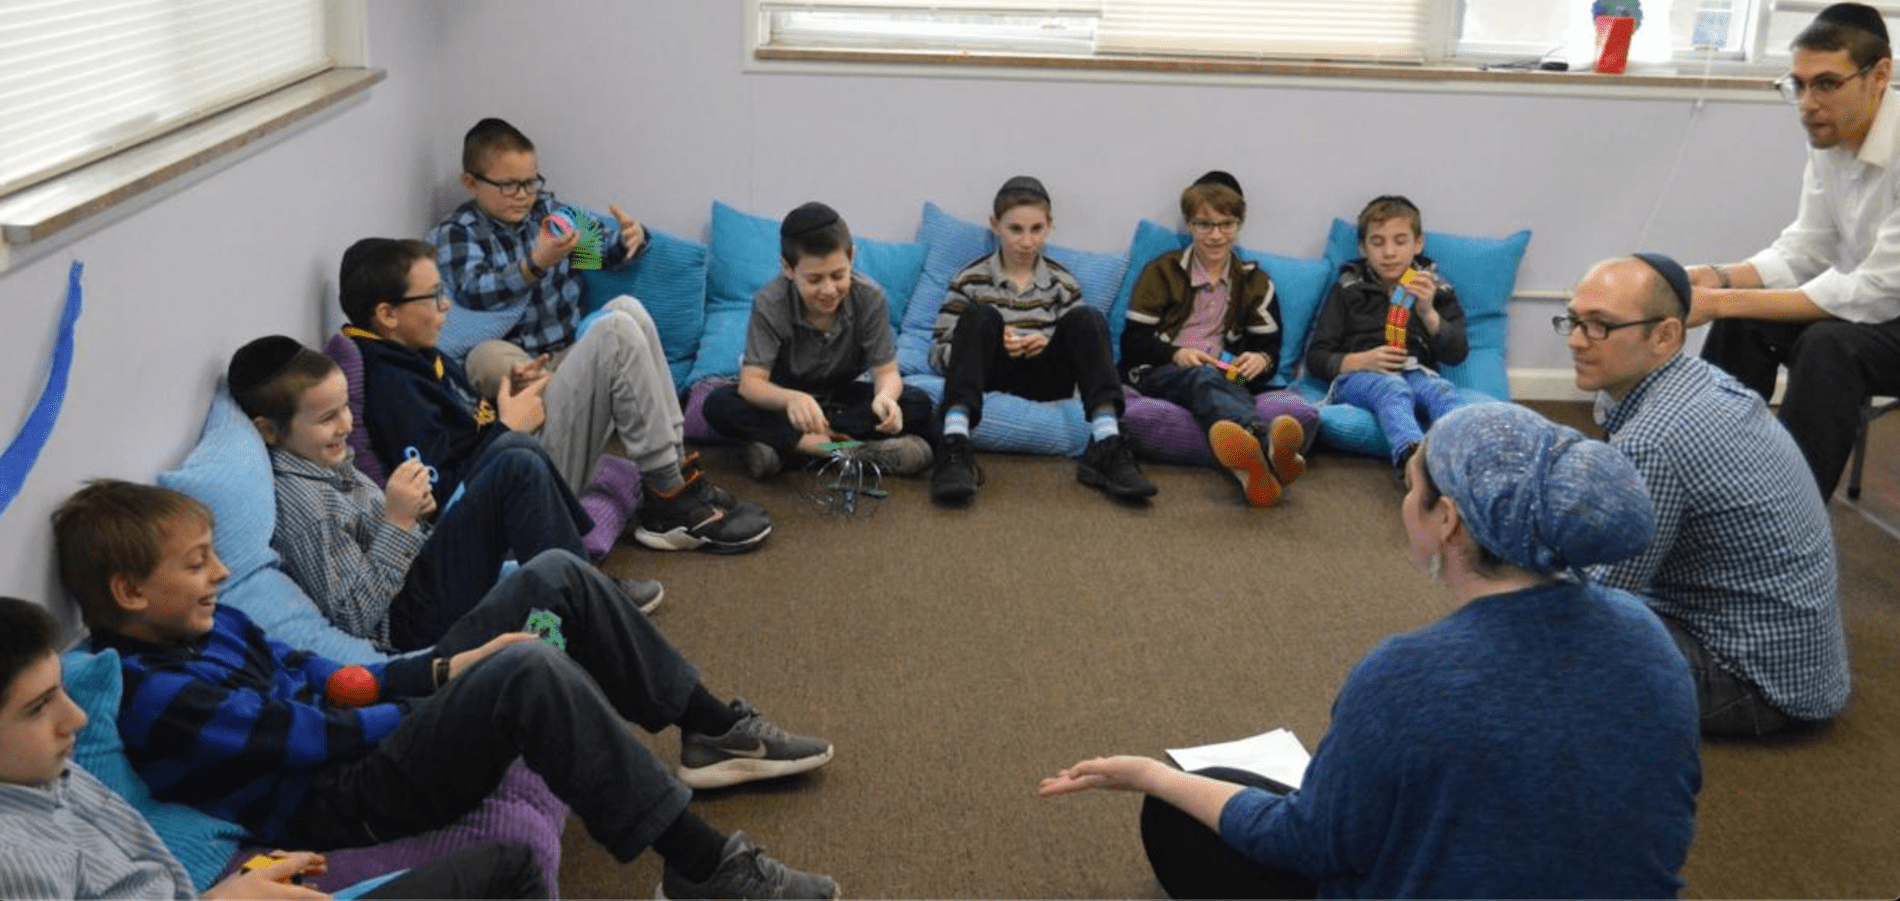 The Social Skills Group Helping Kids Thrive & Other Orthodox Jews in the News